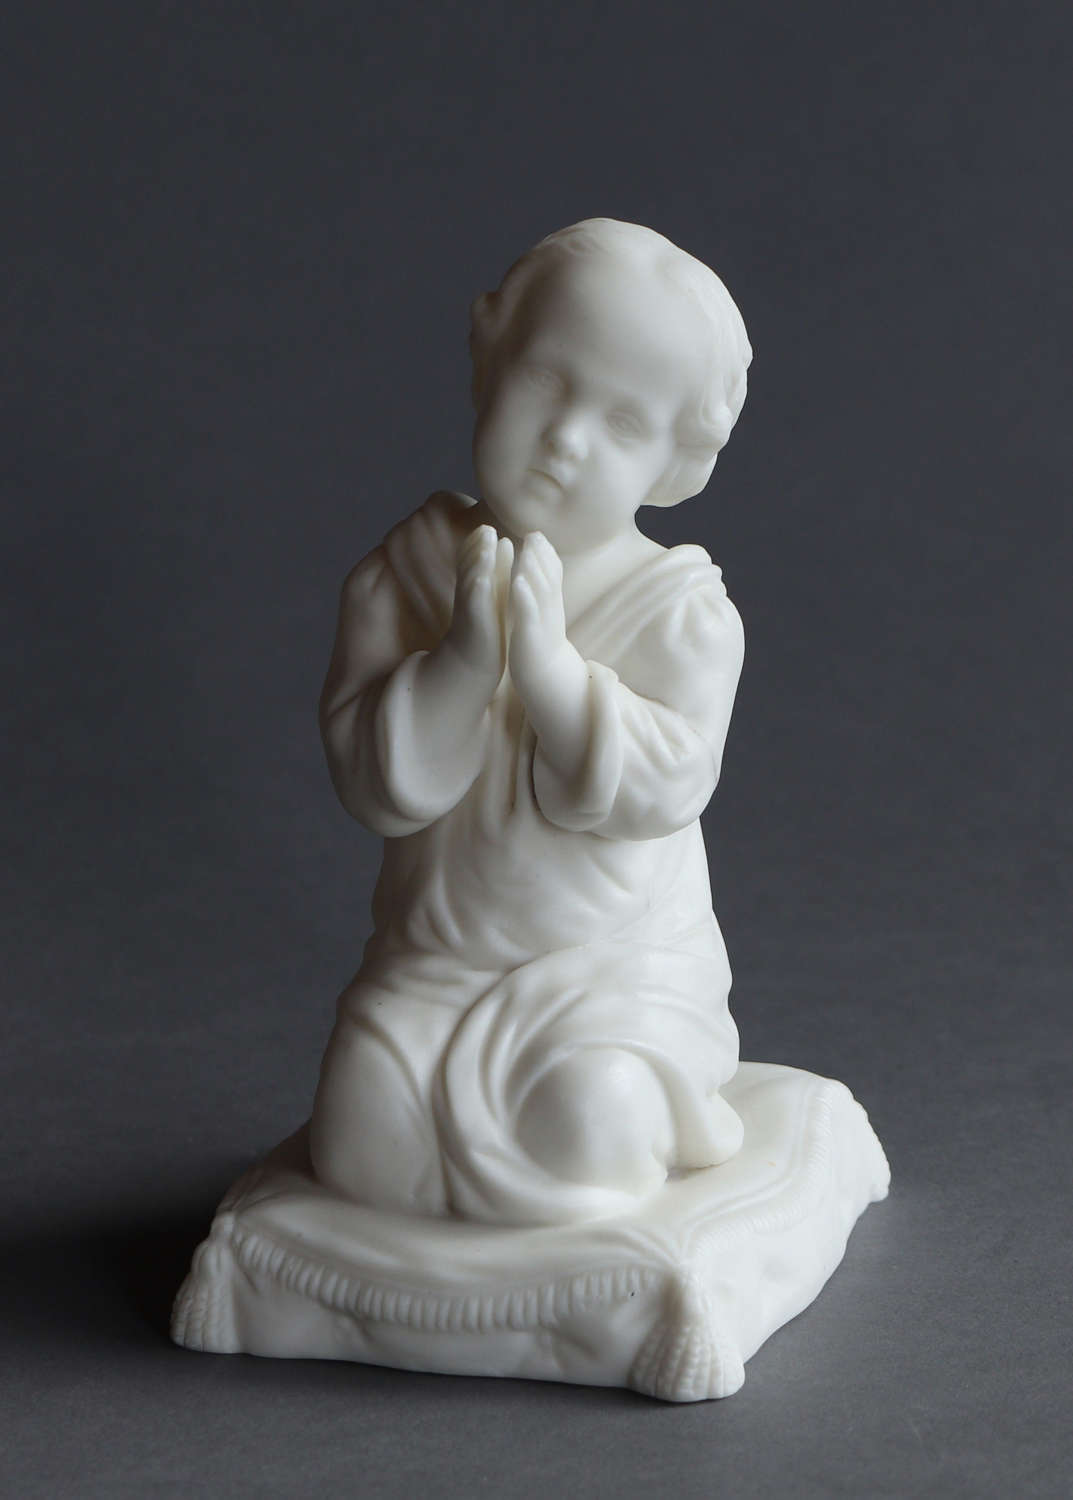 A small Parian figure of the infant Samuel